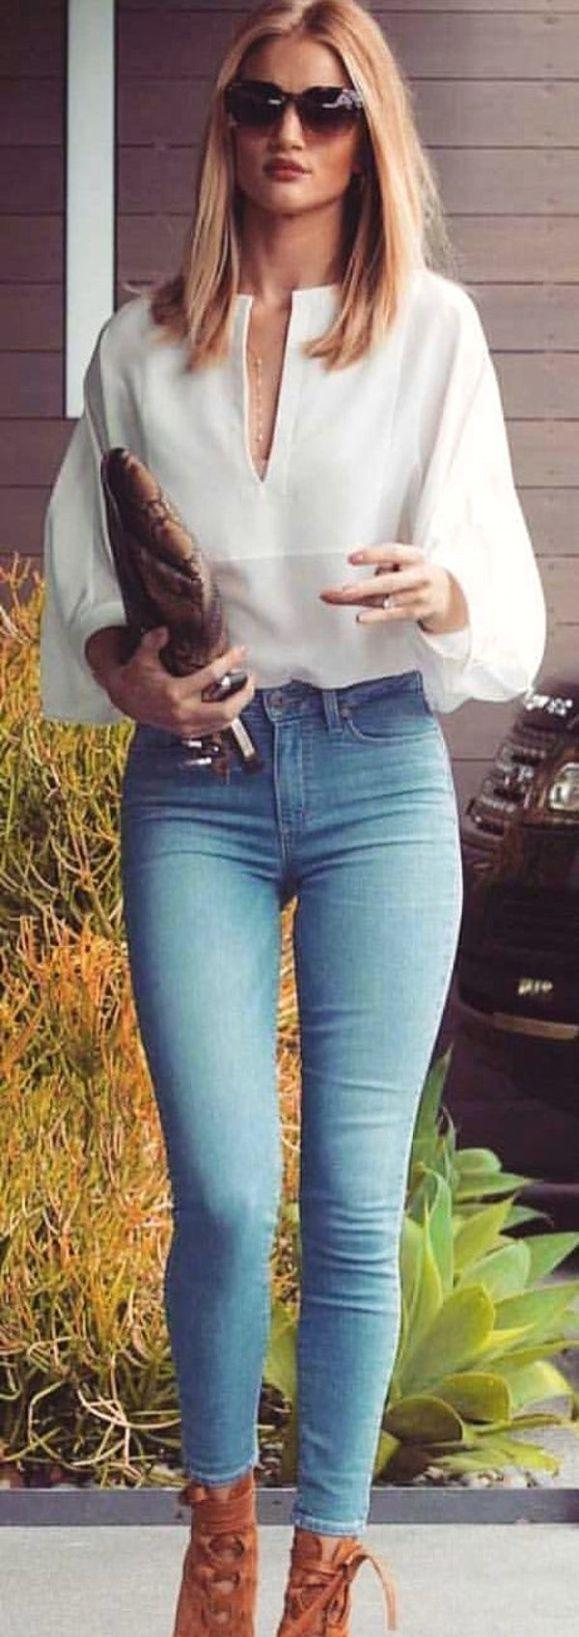 Clutch Plus White Blouse Plus Brown Lace Up Heels paired with Jeans Outfit Ideas – Denim O ...